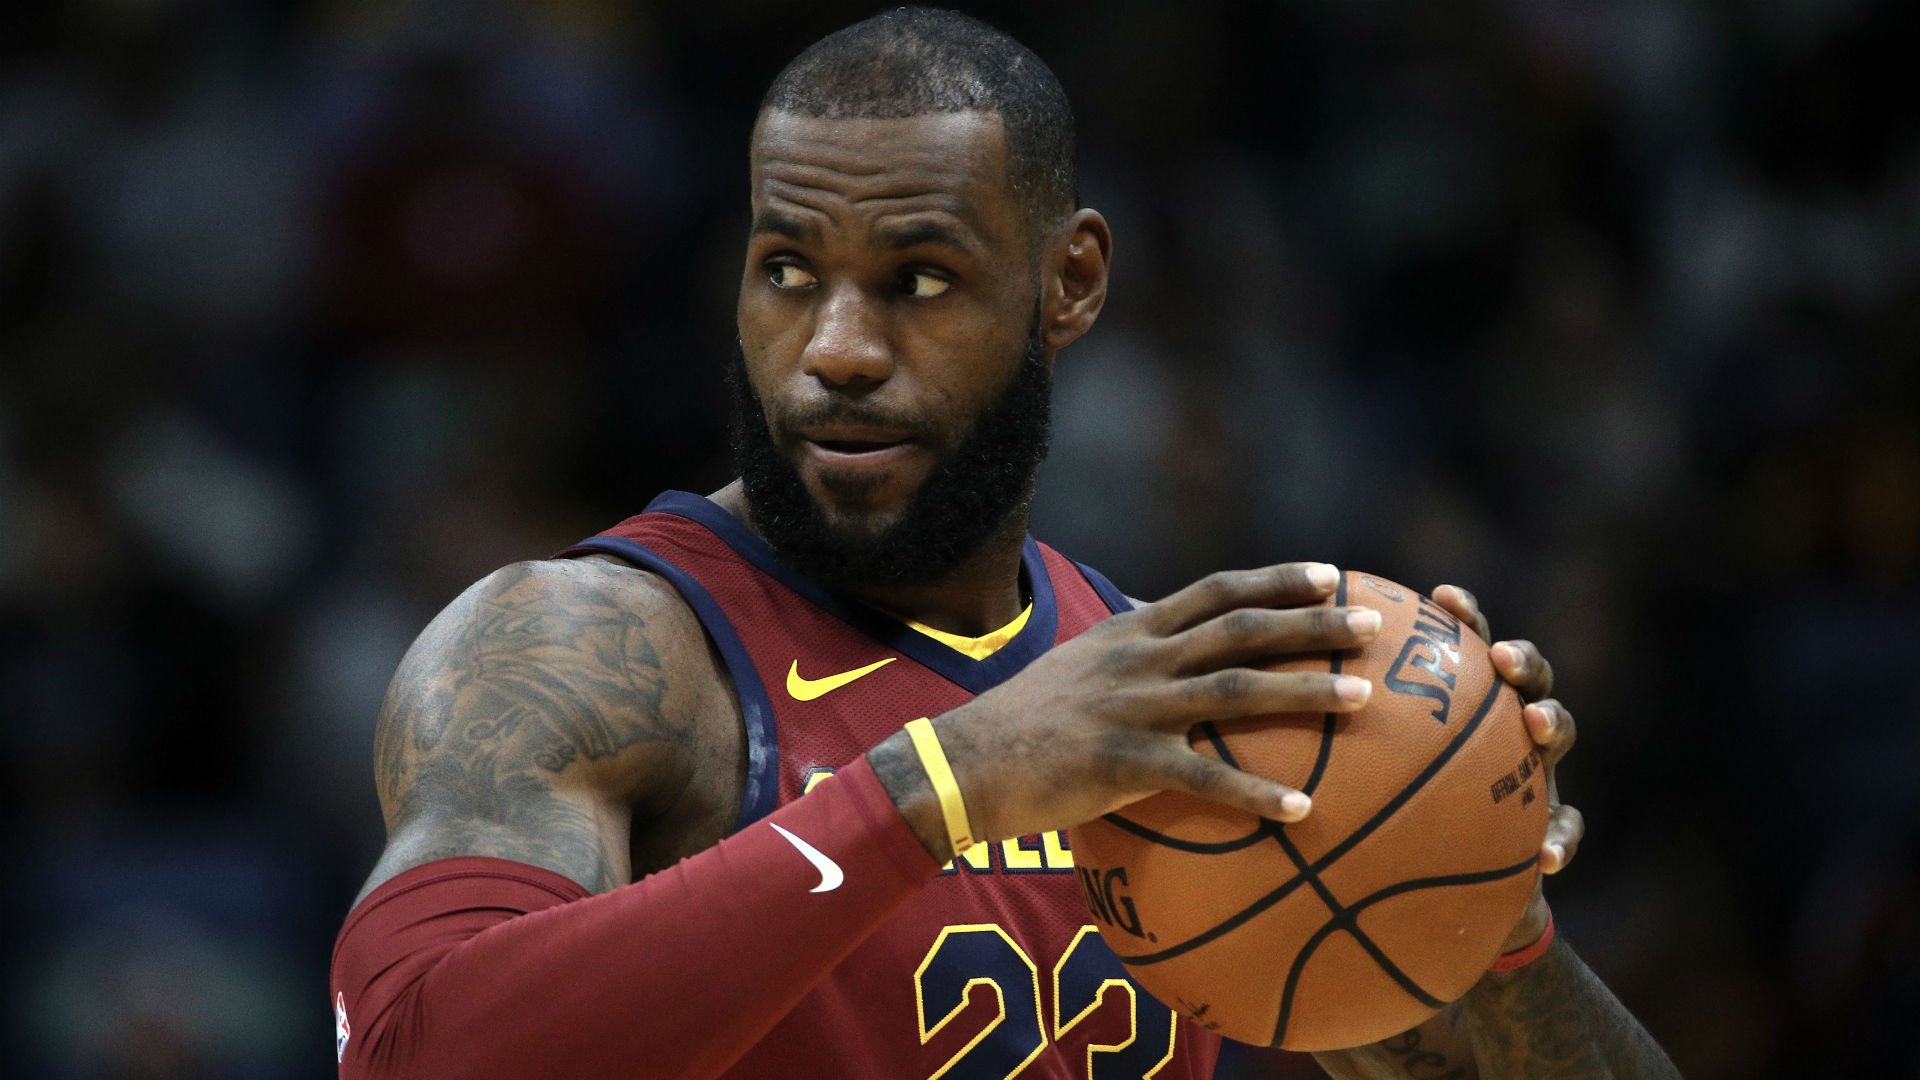 LeBron James uses NBA 2K to see what it's like to play with Isaiah Thomas